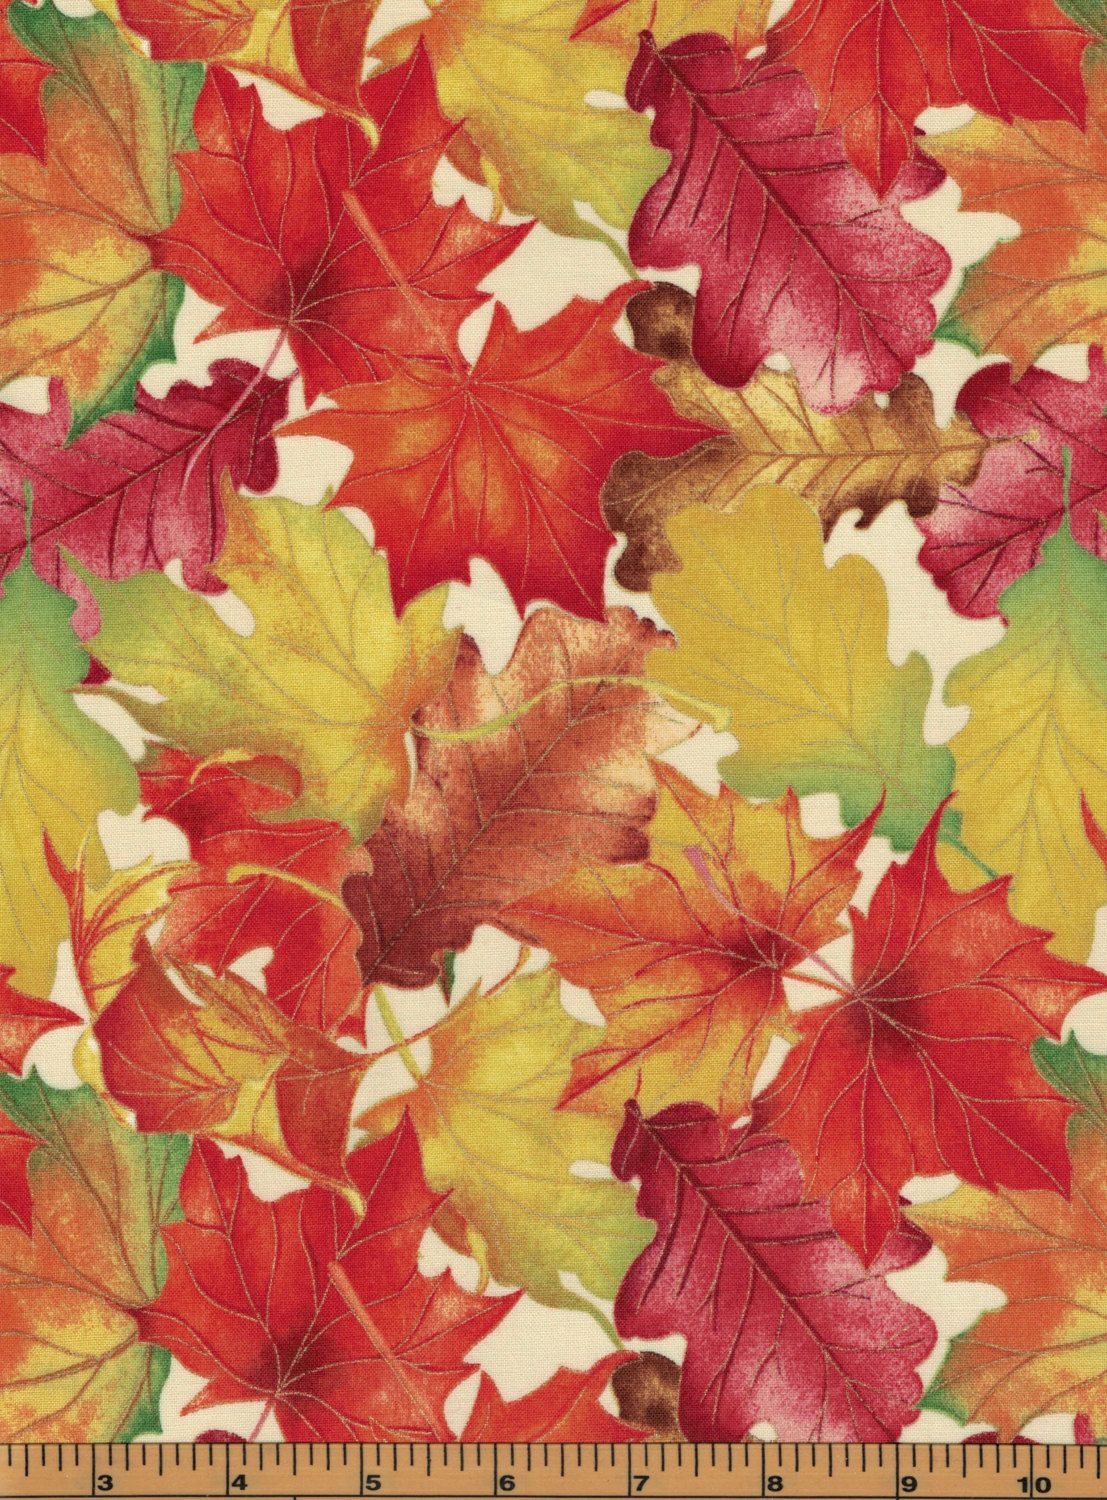 Large Fall Leaves - Harvest Bounty Collection by Quilting ... : high quality quilting fabric - Adamdwight.com